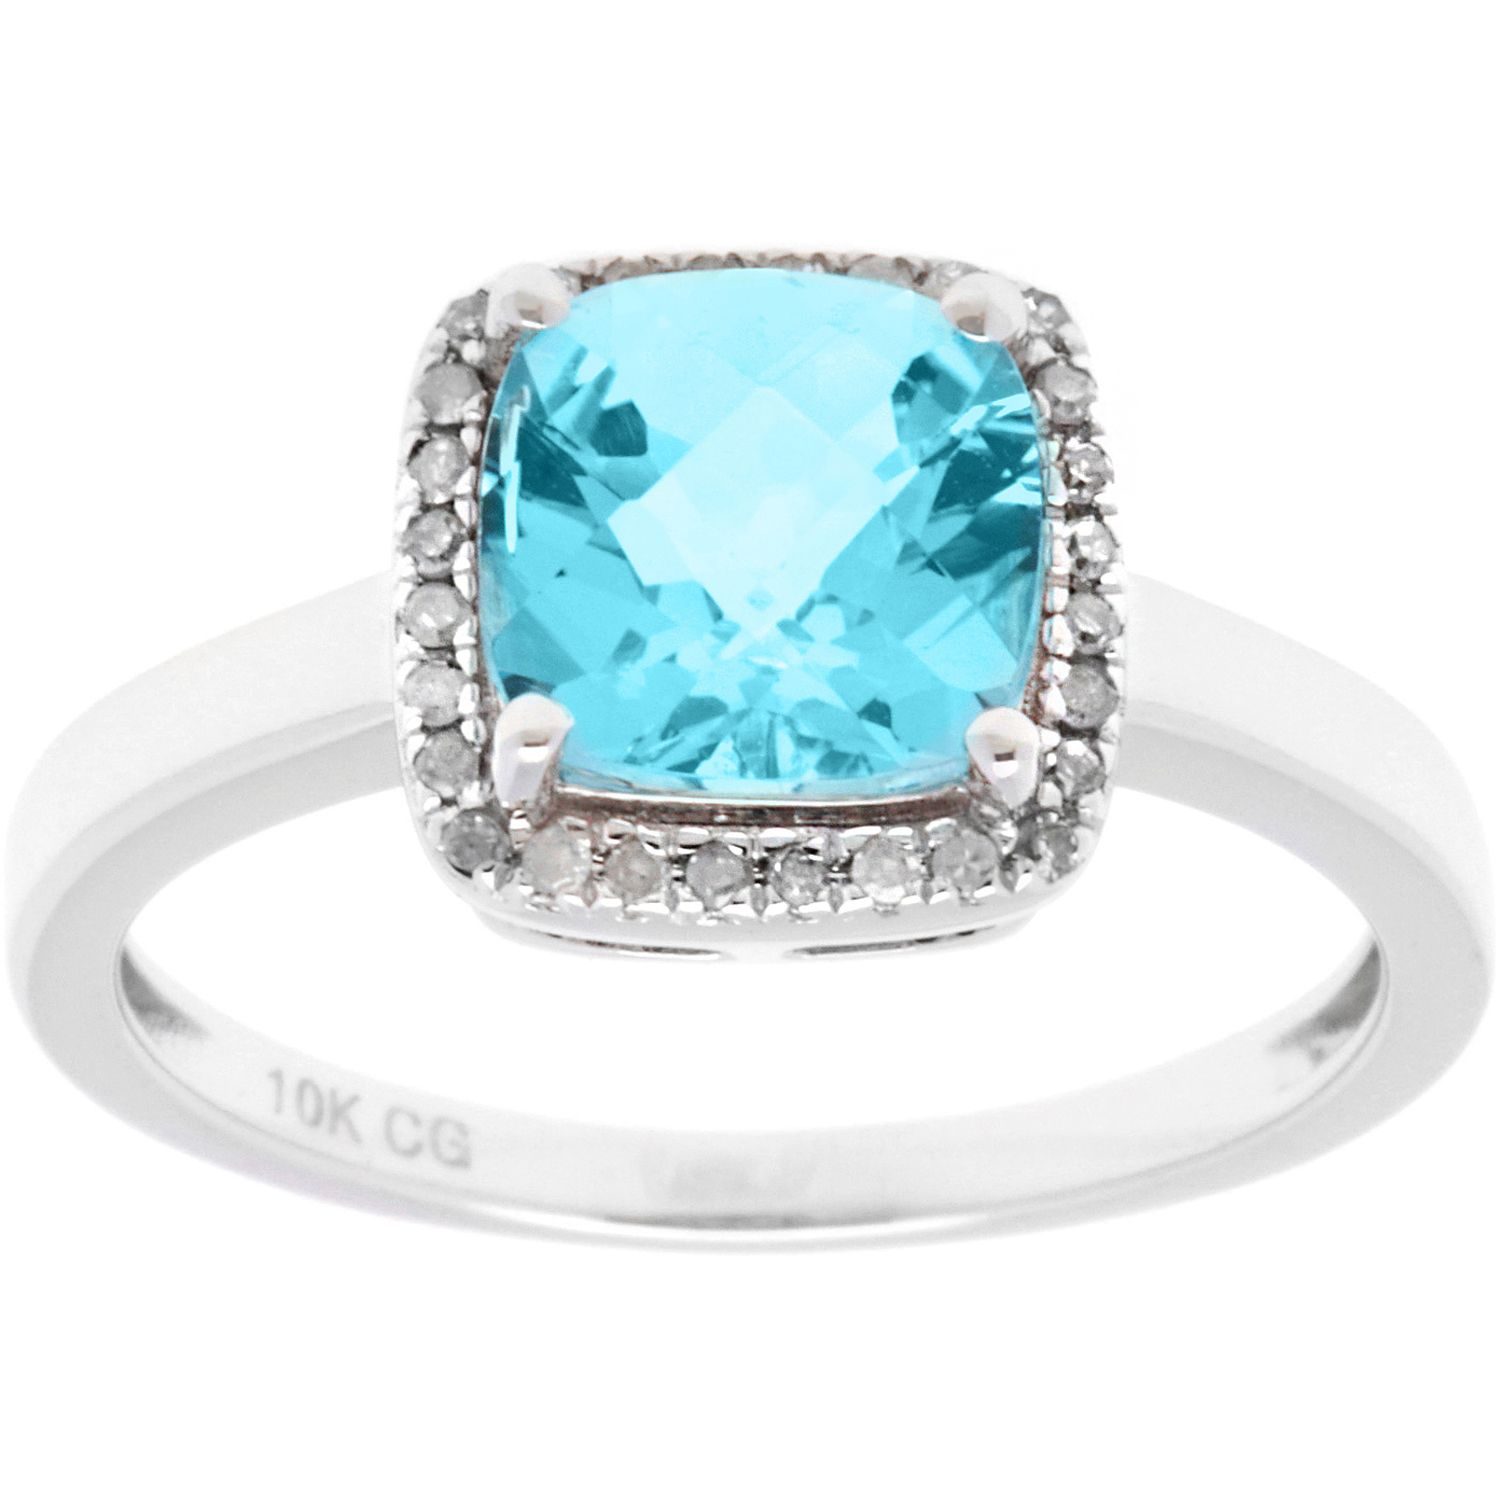 Color 10k White Gold 1/8ct TDW Diamond Halo and Checkerboard-Cut Gemstone Ring (G-H, I1-I2) (Blue Topaz, Size 8), Women's